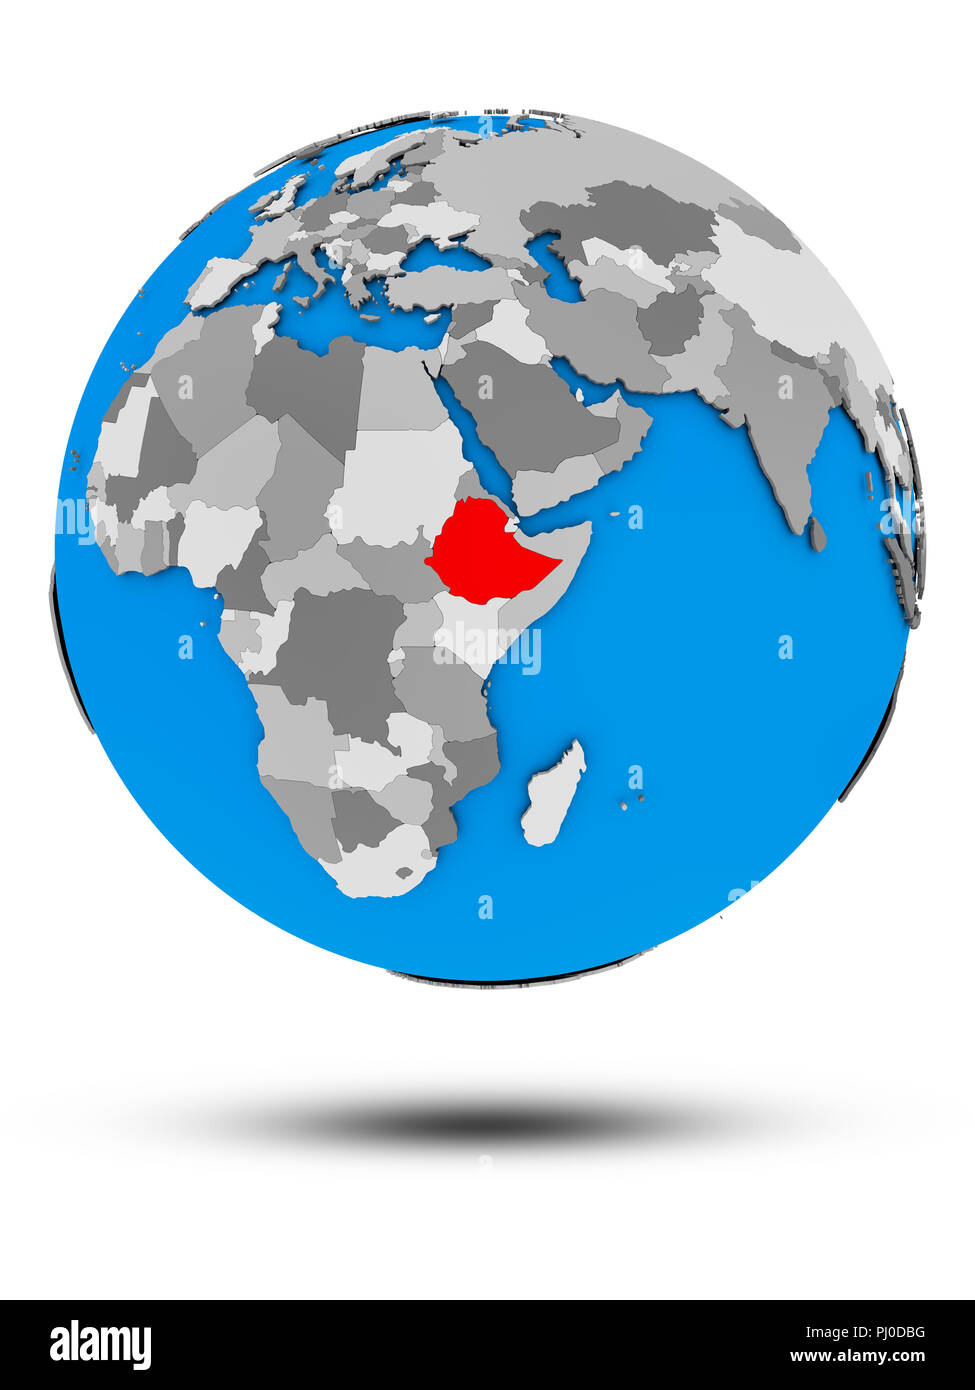 Ethiopia on political globe with shadow isolated on white background. 3D illustration. - Stock Image